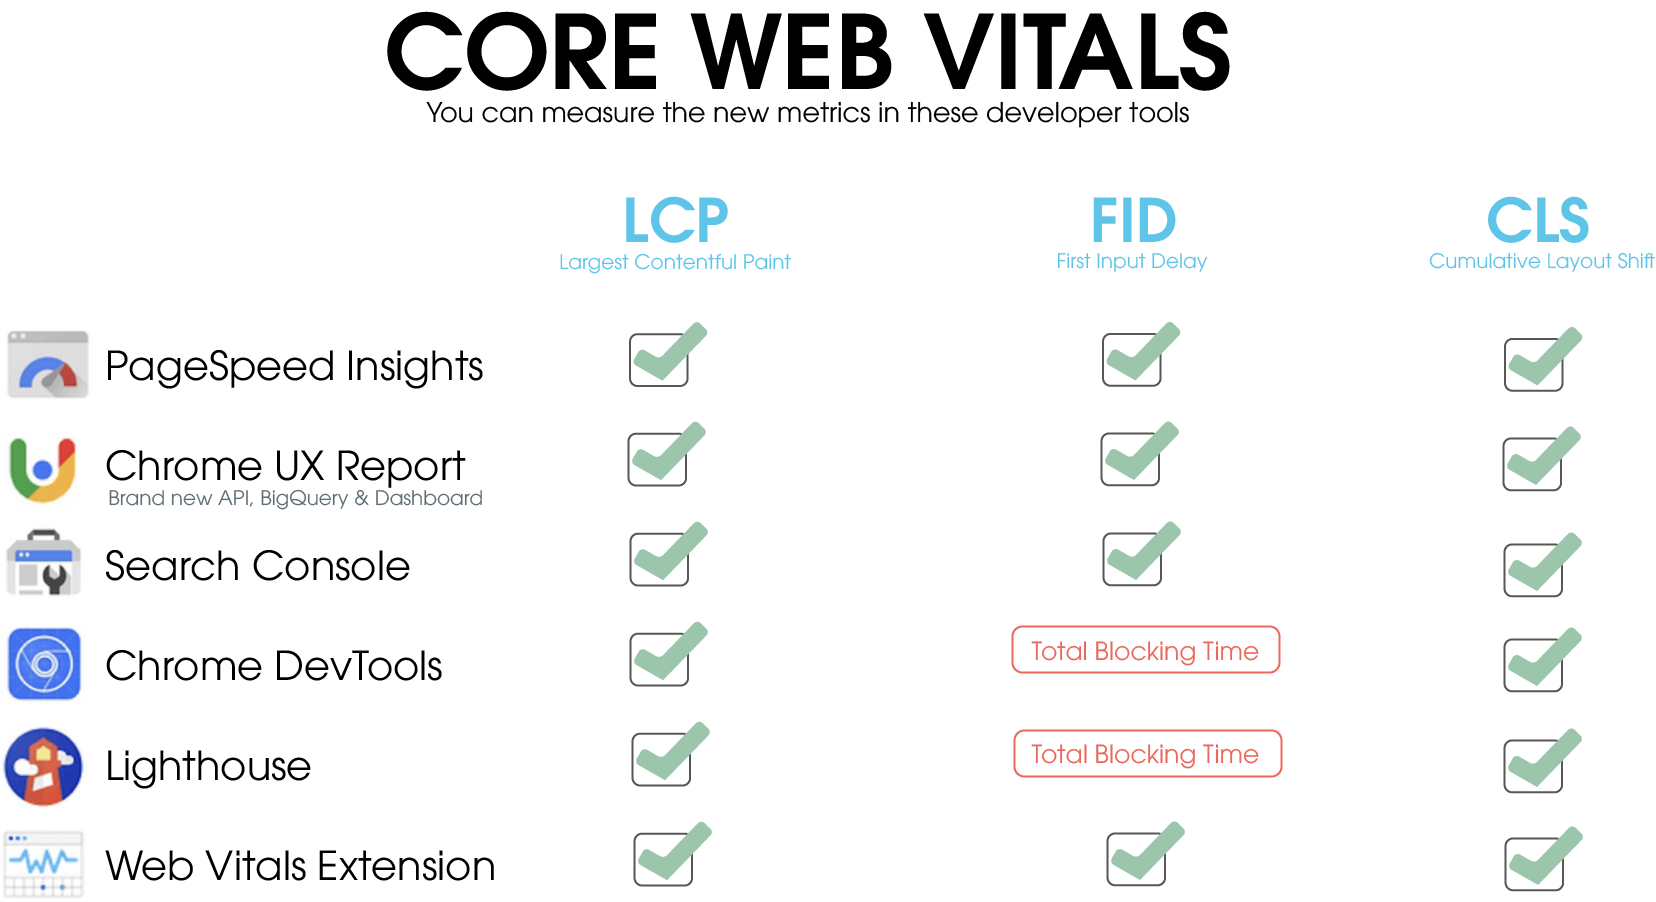 In the picture you can see these developer tools from Google: - PageSpeed Insights - Chrome UX Report - Search Console - Chrome DevTools - Lighthouse - Web Vitals Extension  In all tools the new Core Web Vitals metrics are available, but FID cannot be measured in Chrome DevTools nor. inLighthouse.